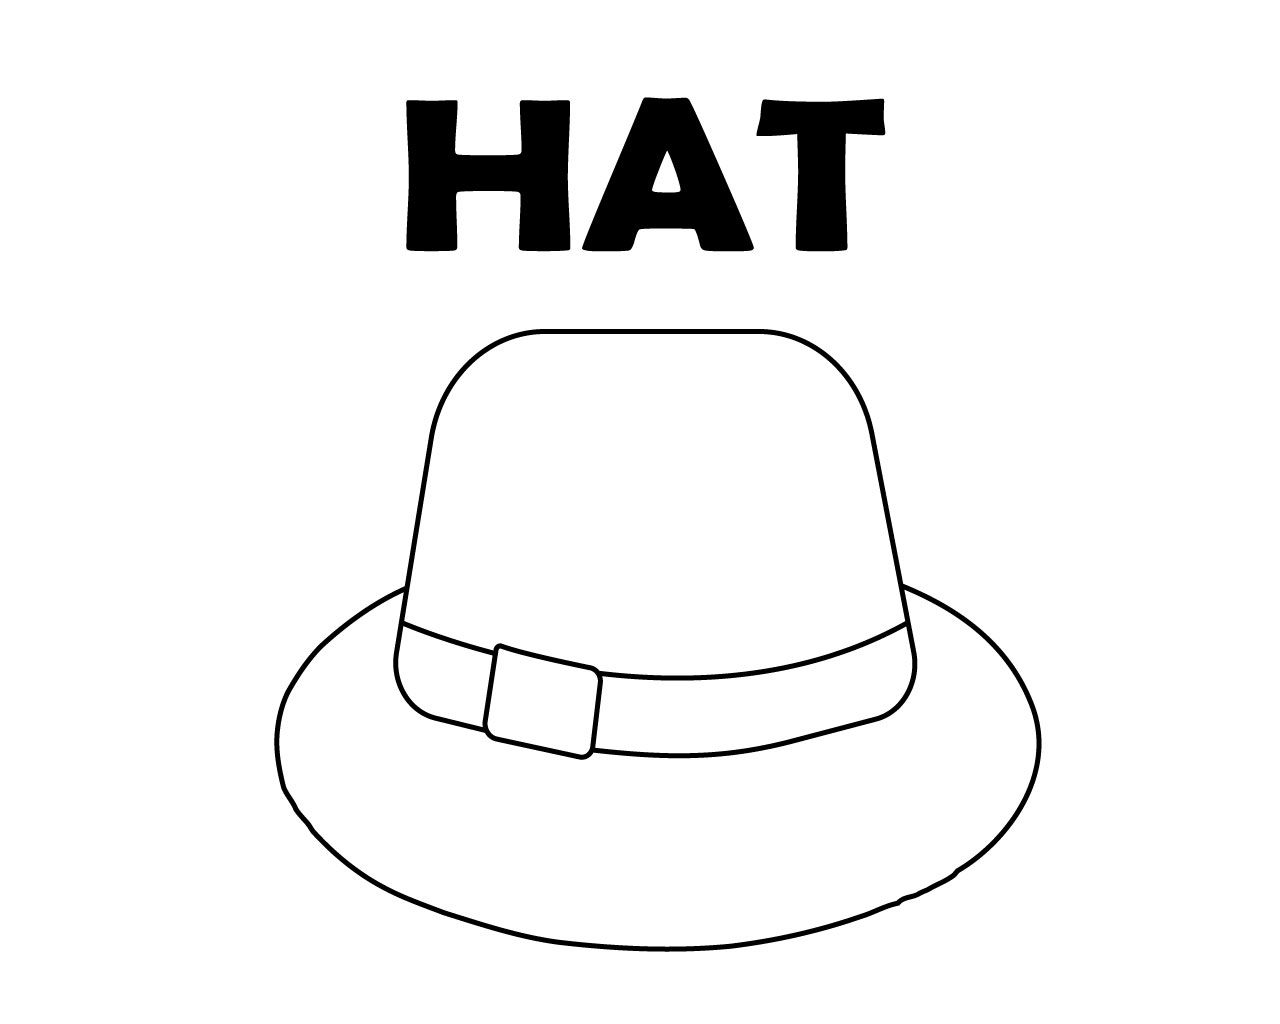 Hat Coloring Page To Print We Like Hat There Are Different Types Of Hat To Color You Can Download Hat Co Coloring Pages To Print Coloring Pages Types Of Hats